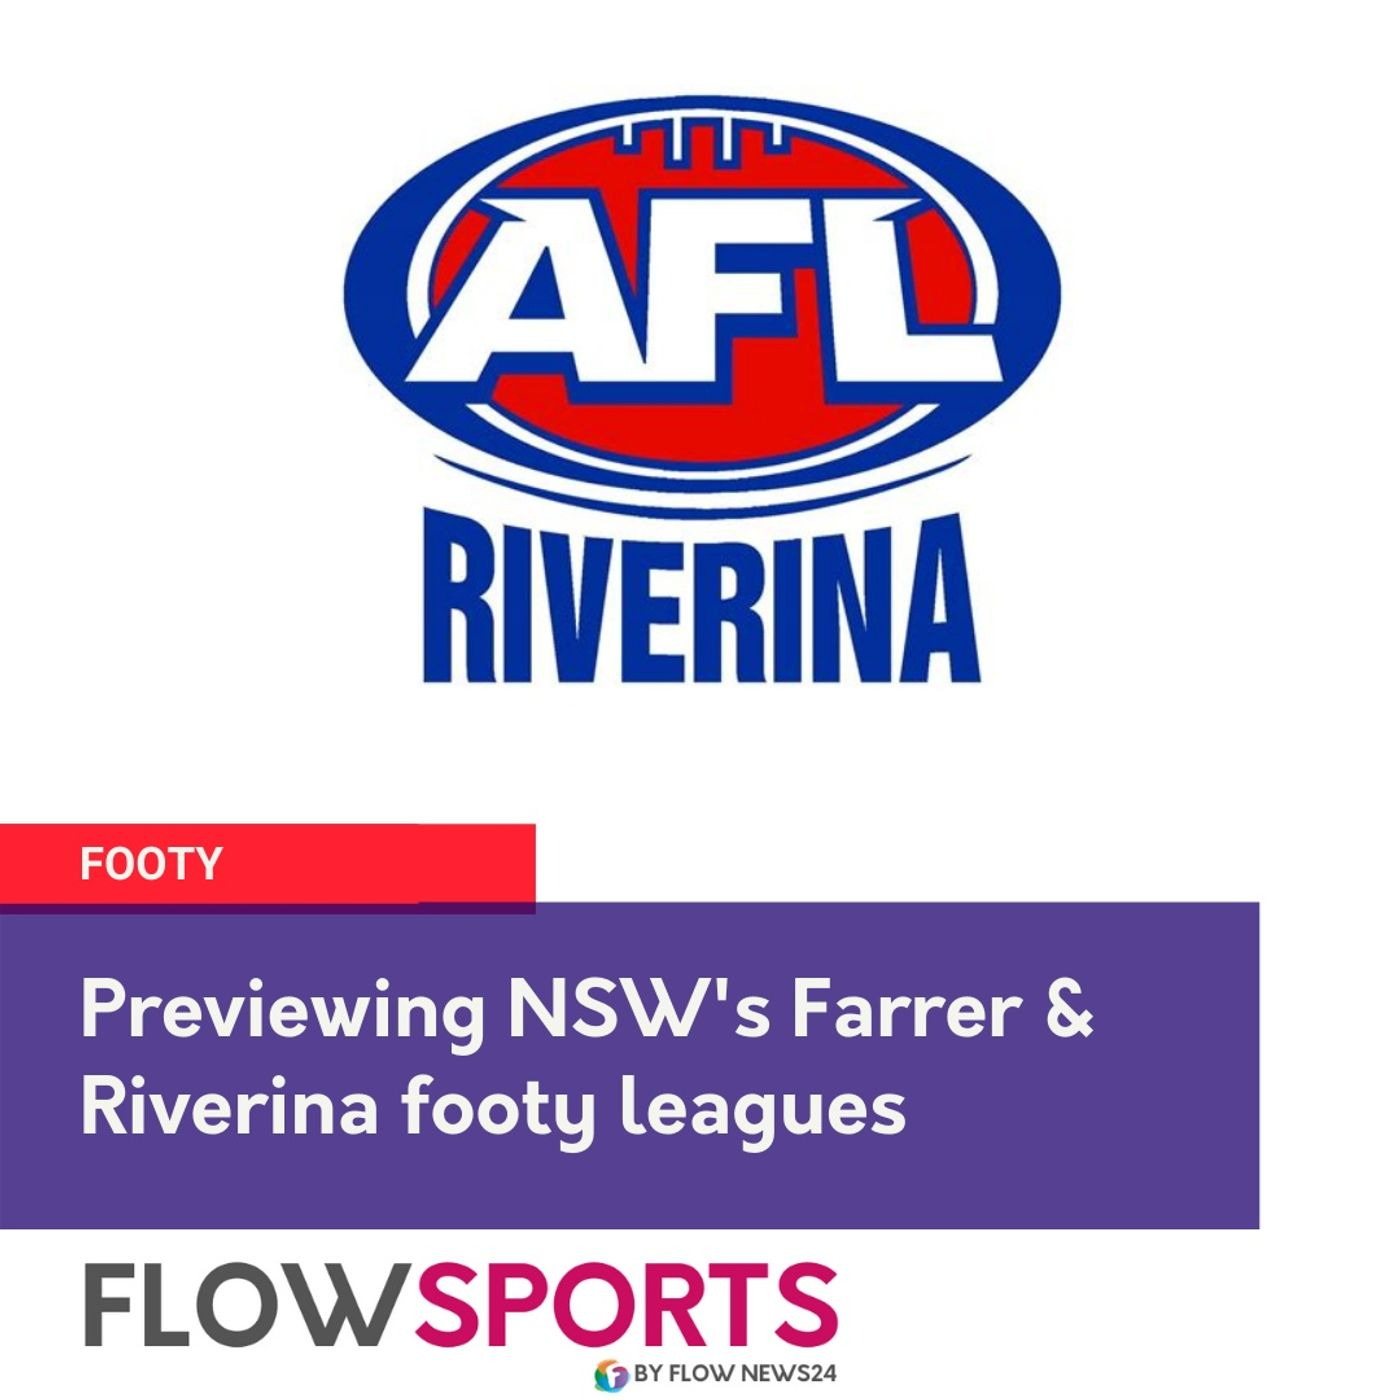 Wayne 'Flowman' Phillips reviews and previews Farrer & Riverina footy